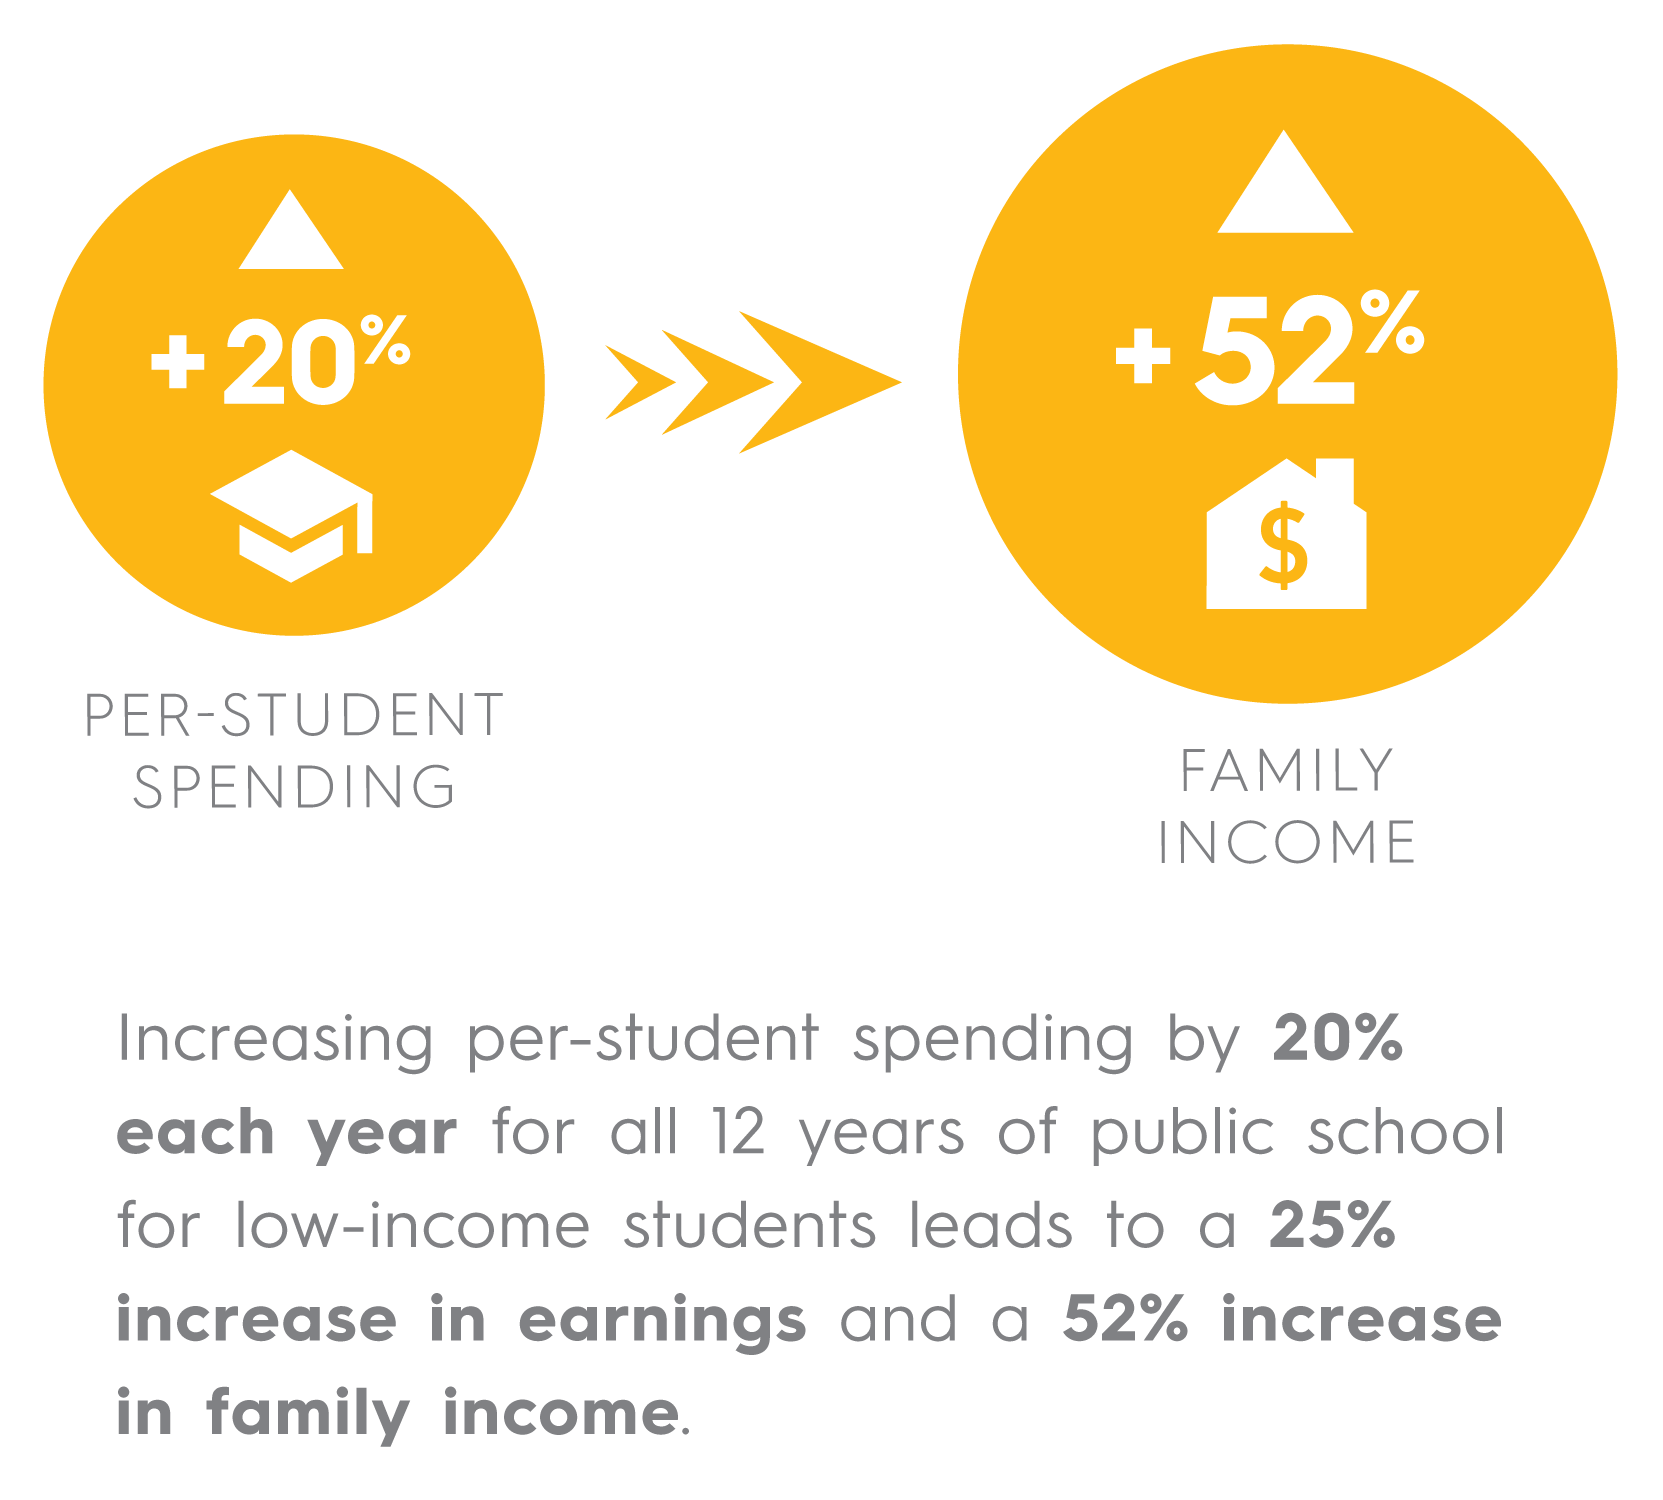 Increasing per student spending by 20% each year for all 12 years of public school for low income students leads to a 25% increase in earnings and a 52% increase in family income.